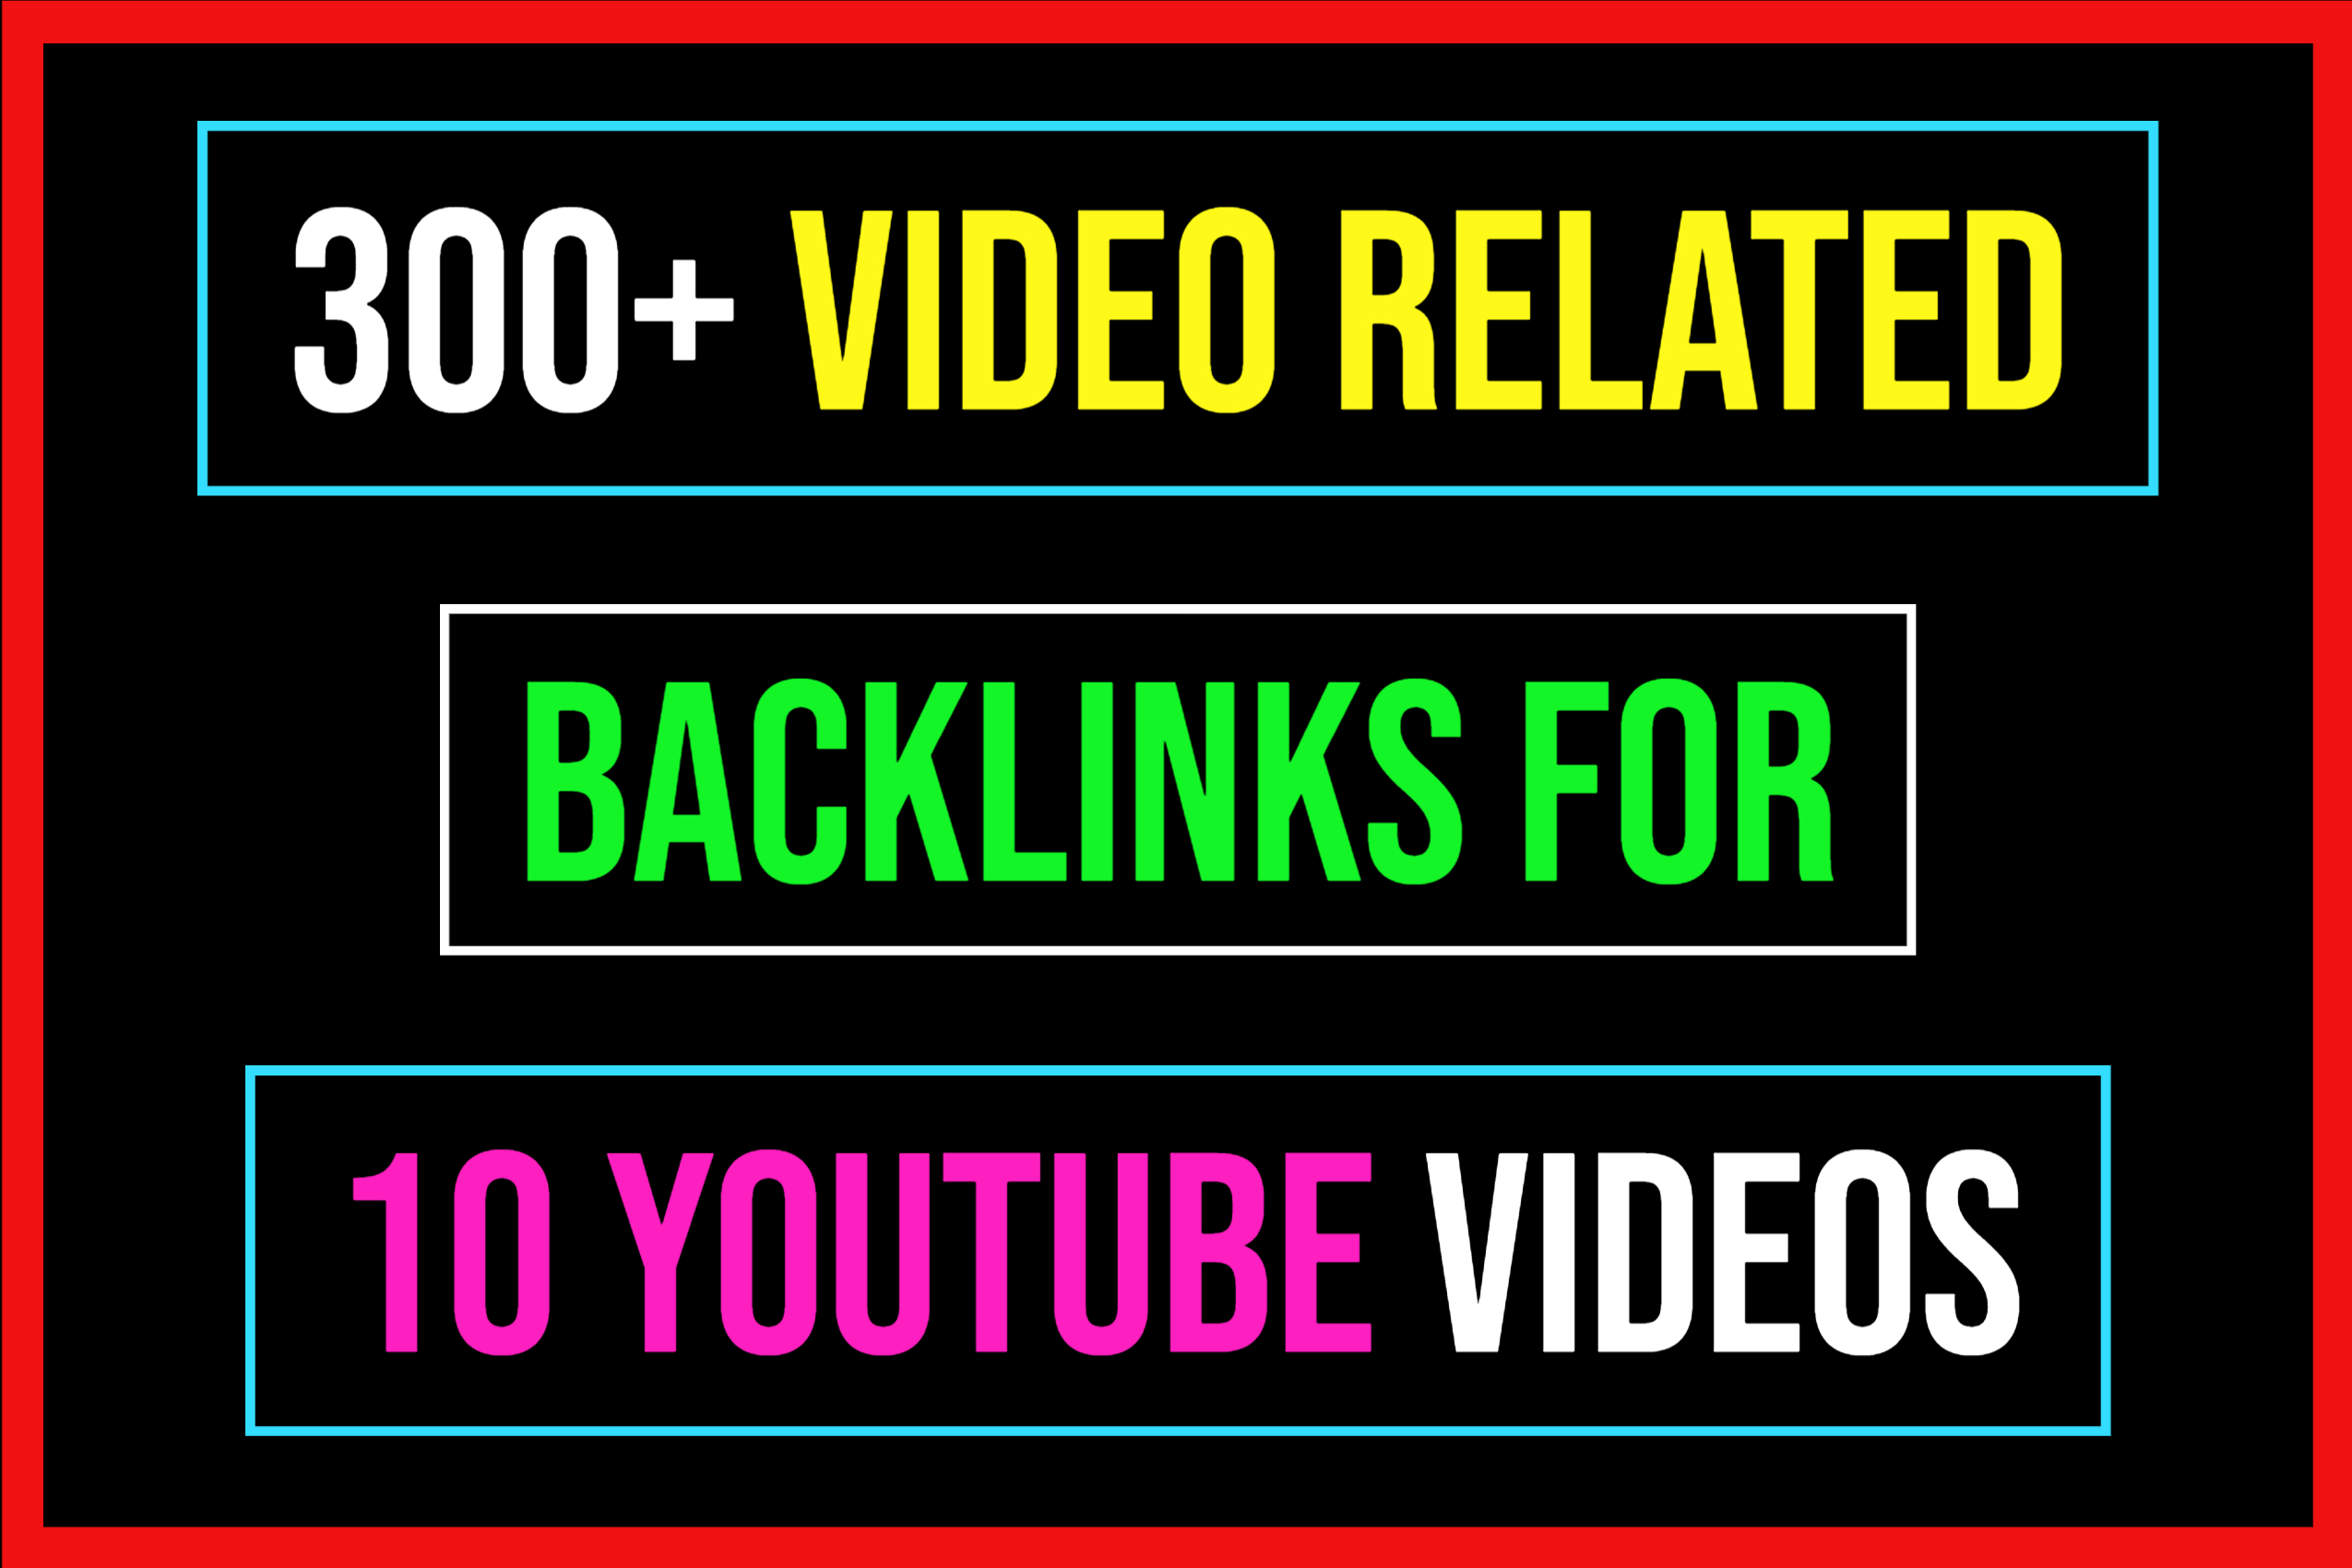 Create 300+ YouTube Video Related Backlinks To Get Rank On YouTube